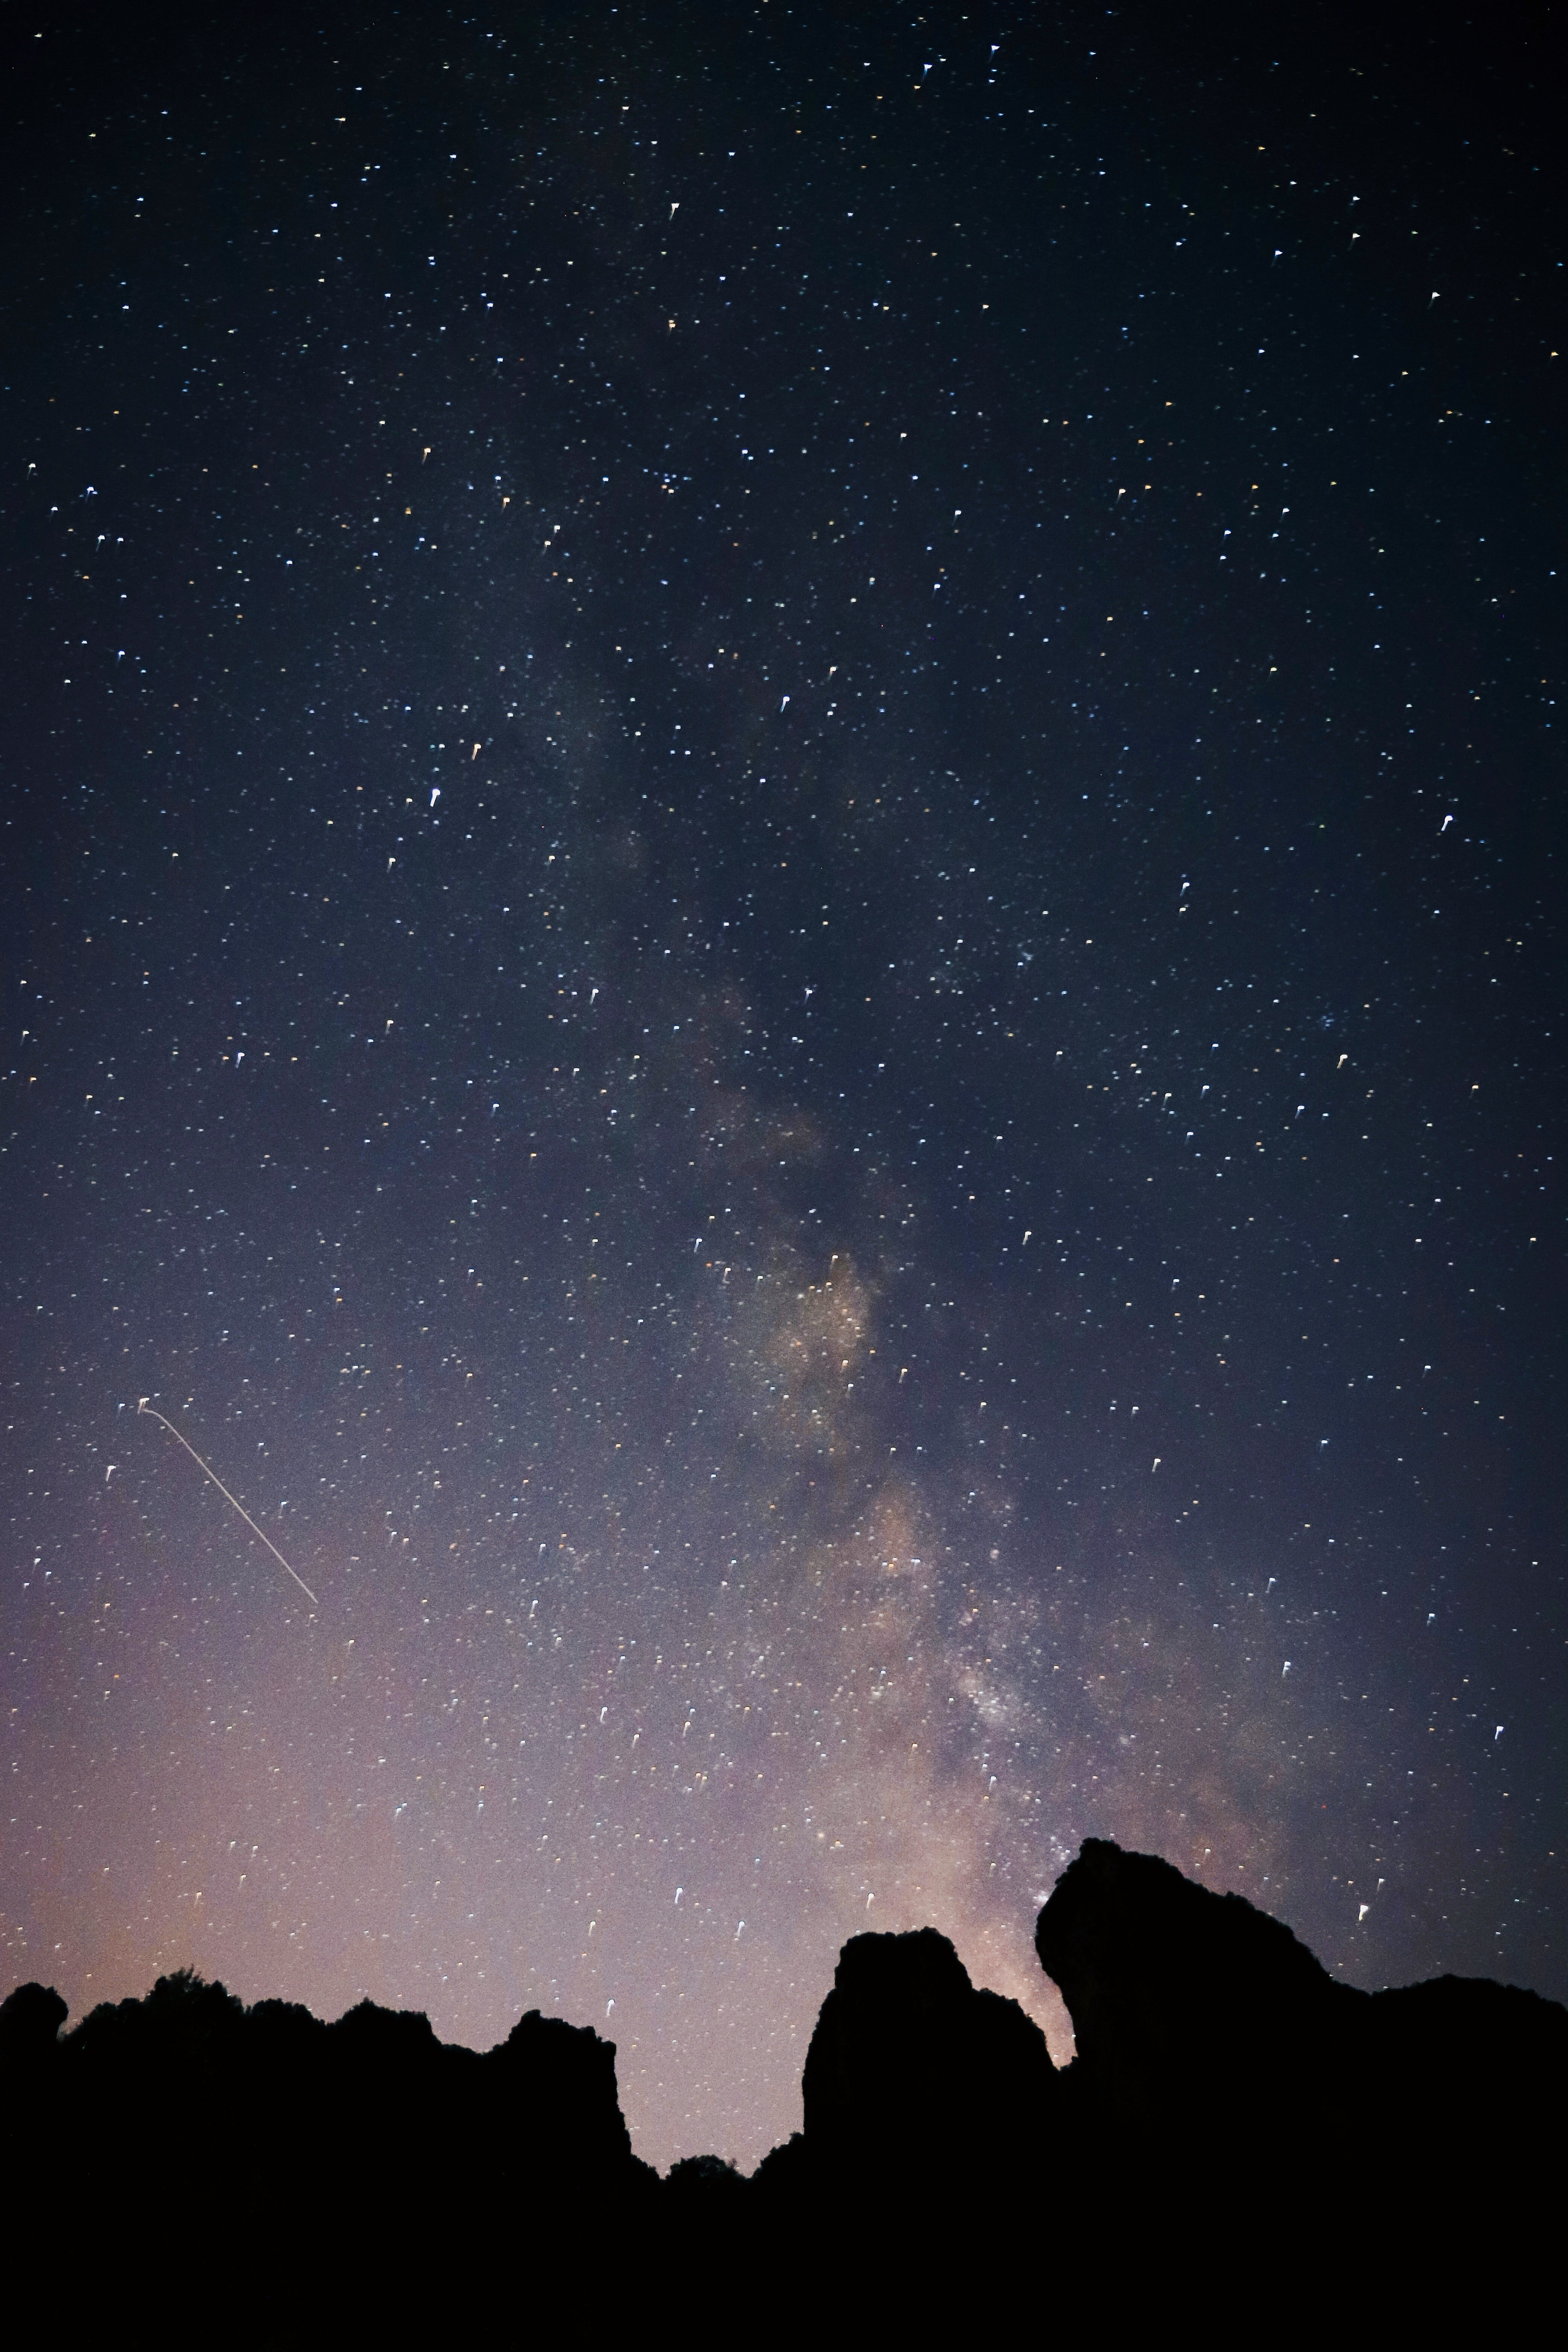 silhouette photo of mountains under starry night